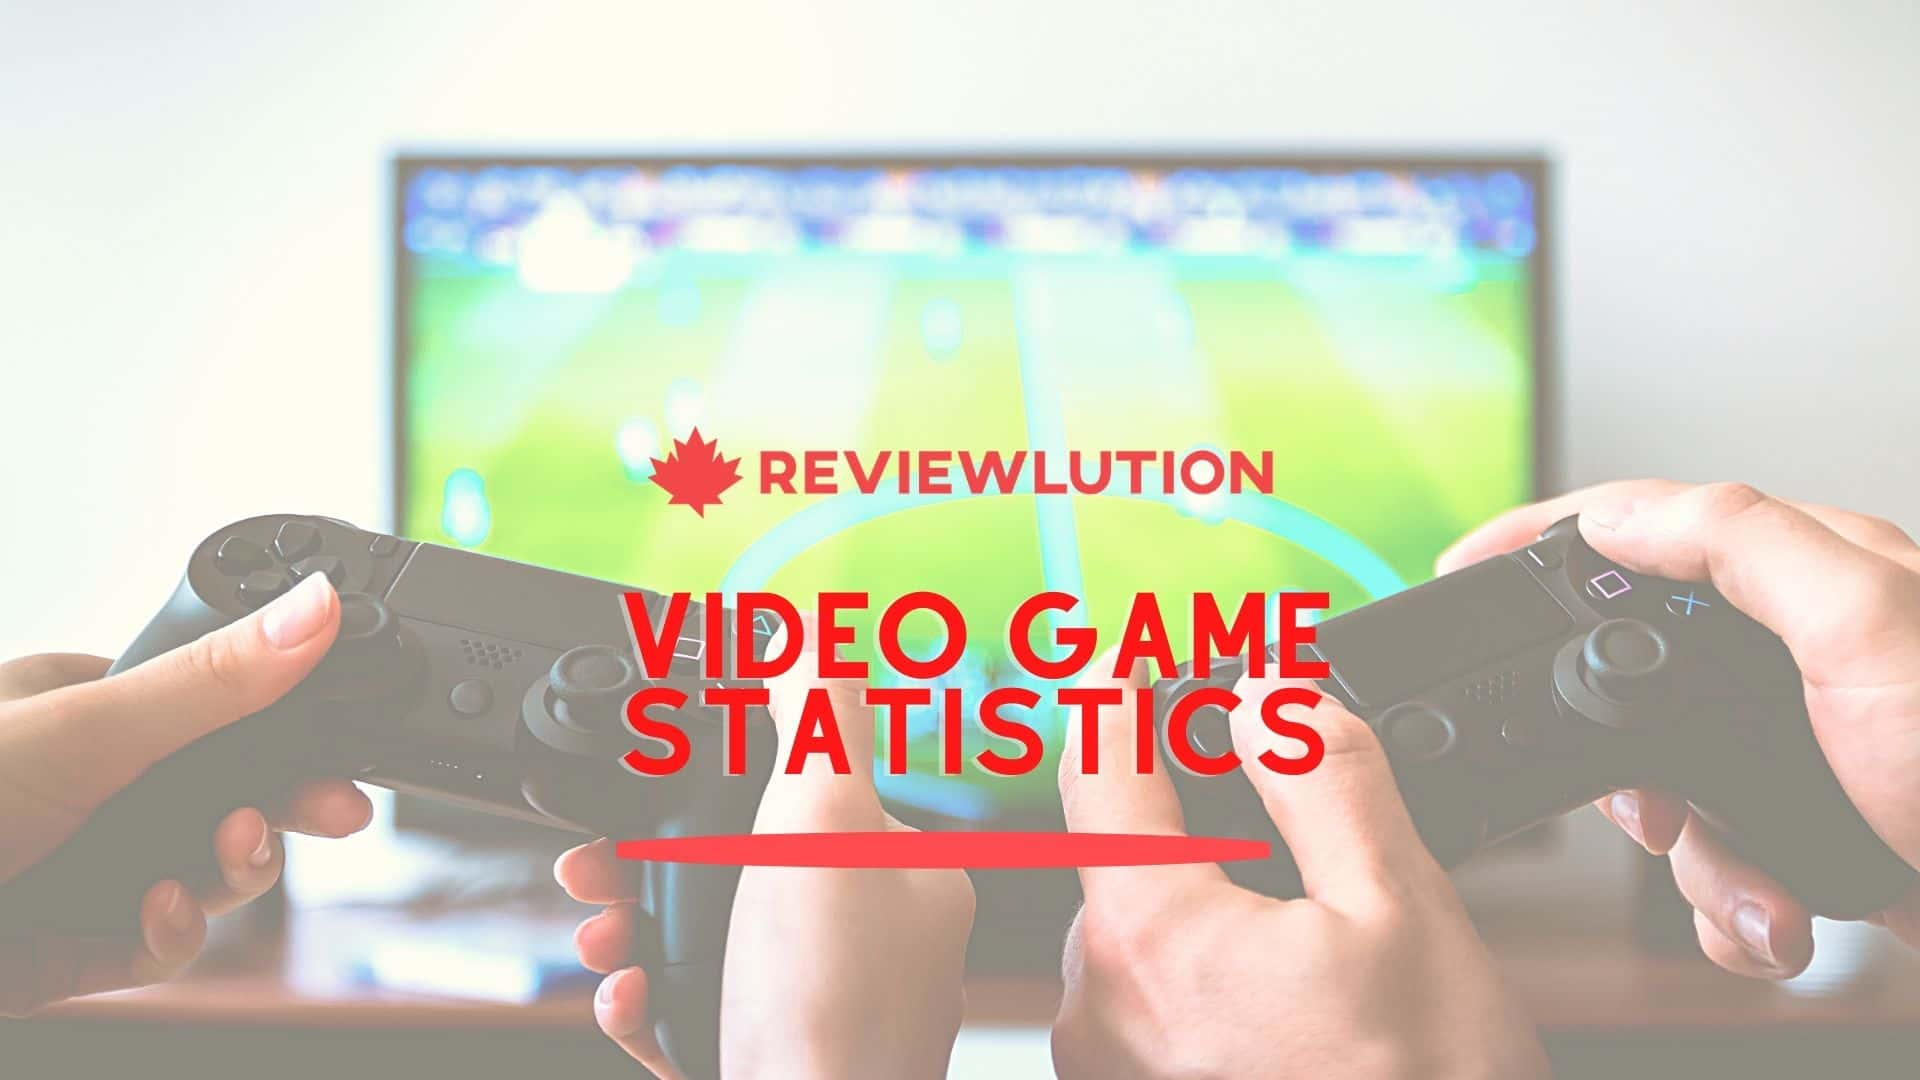 15 Amazing Video Game Statistics for Canada in 2021